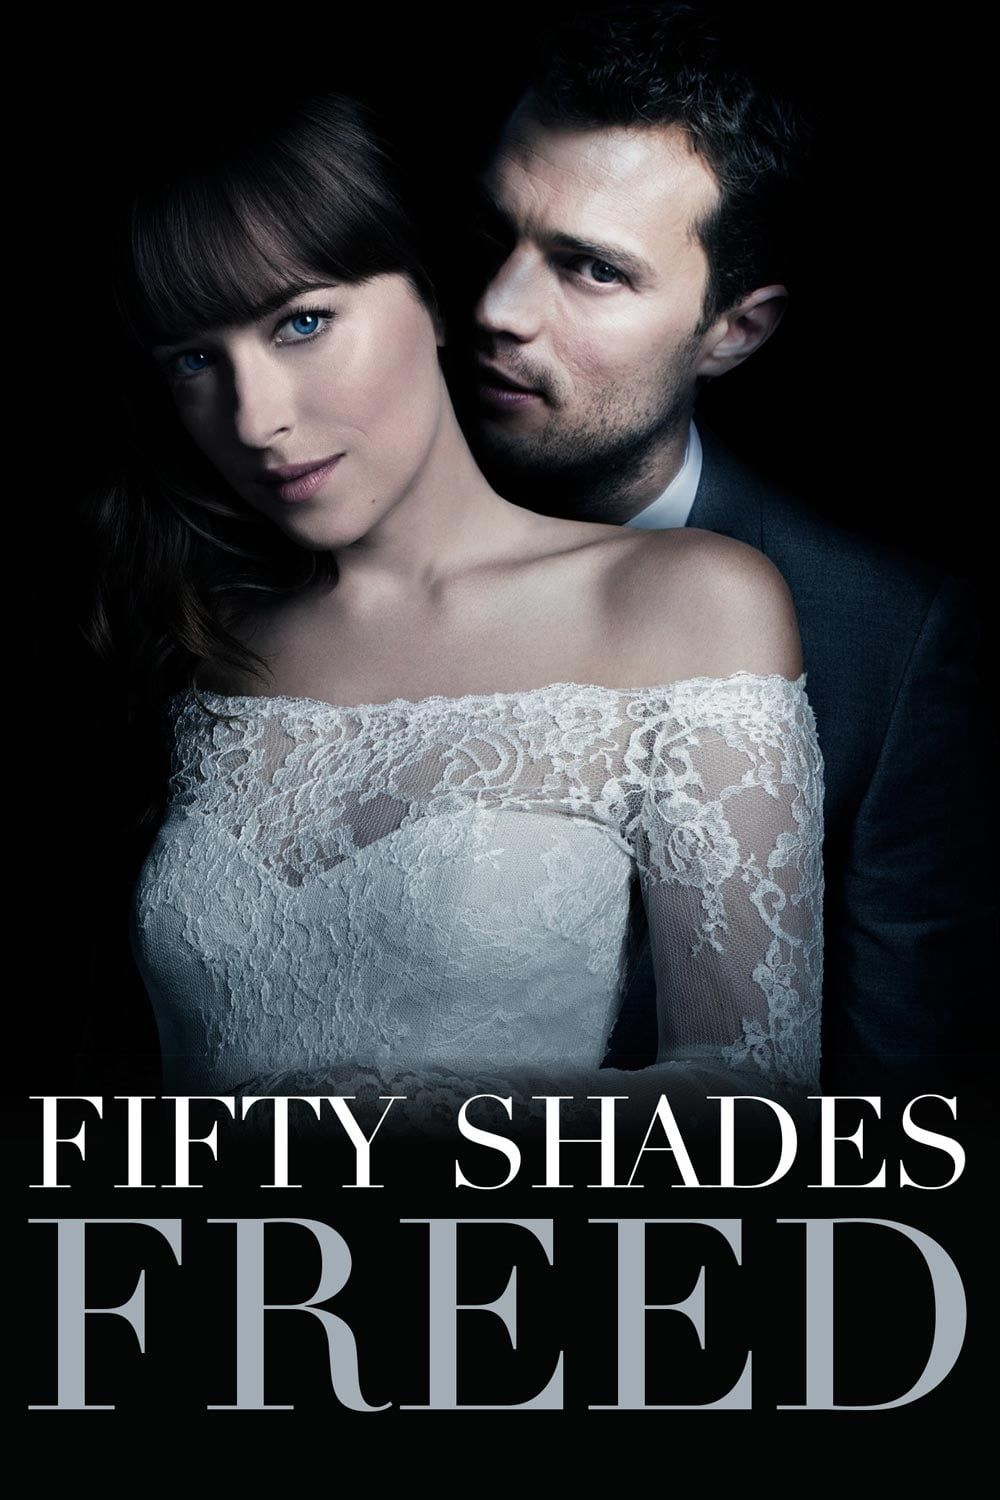 Nonton Film Fifty Shades Of Darker : nonton, fifty, shades, darker, Fifty, Shades, Freed, (2018),, Complet,, Regarder, Streaming, Movie,